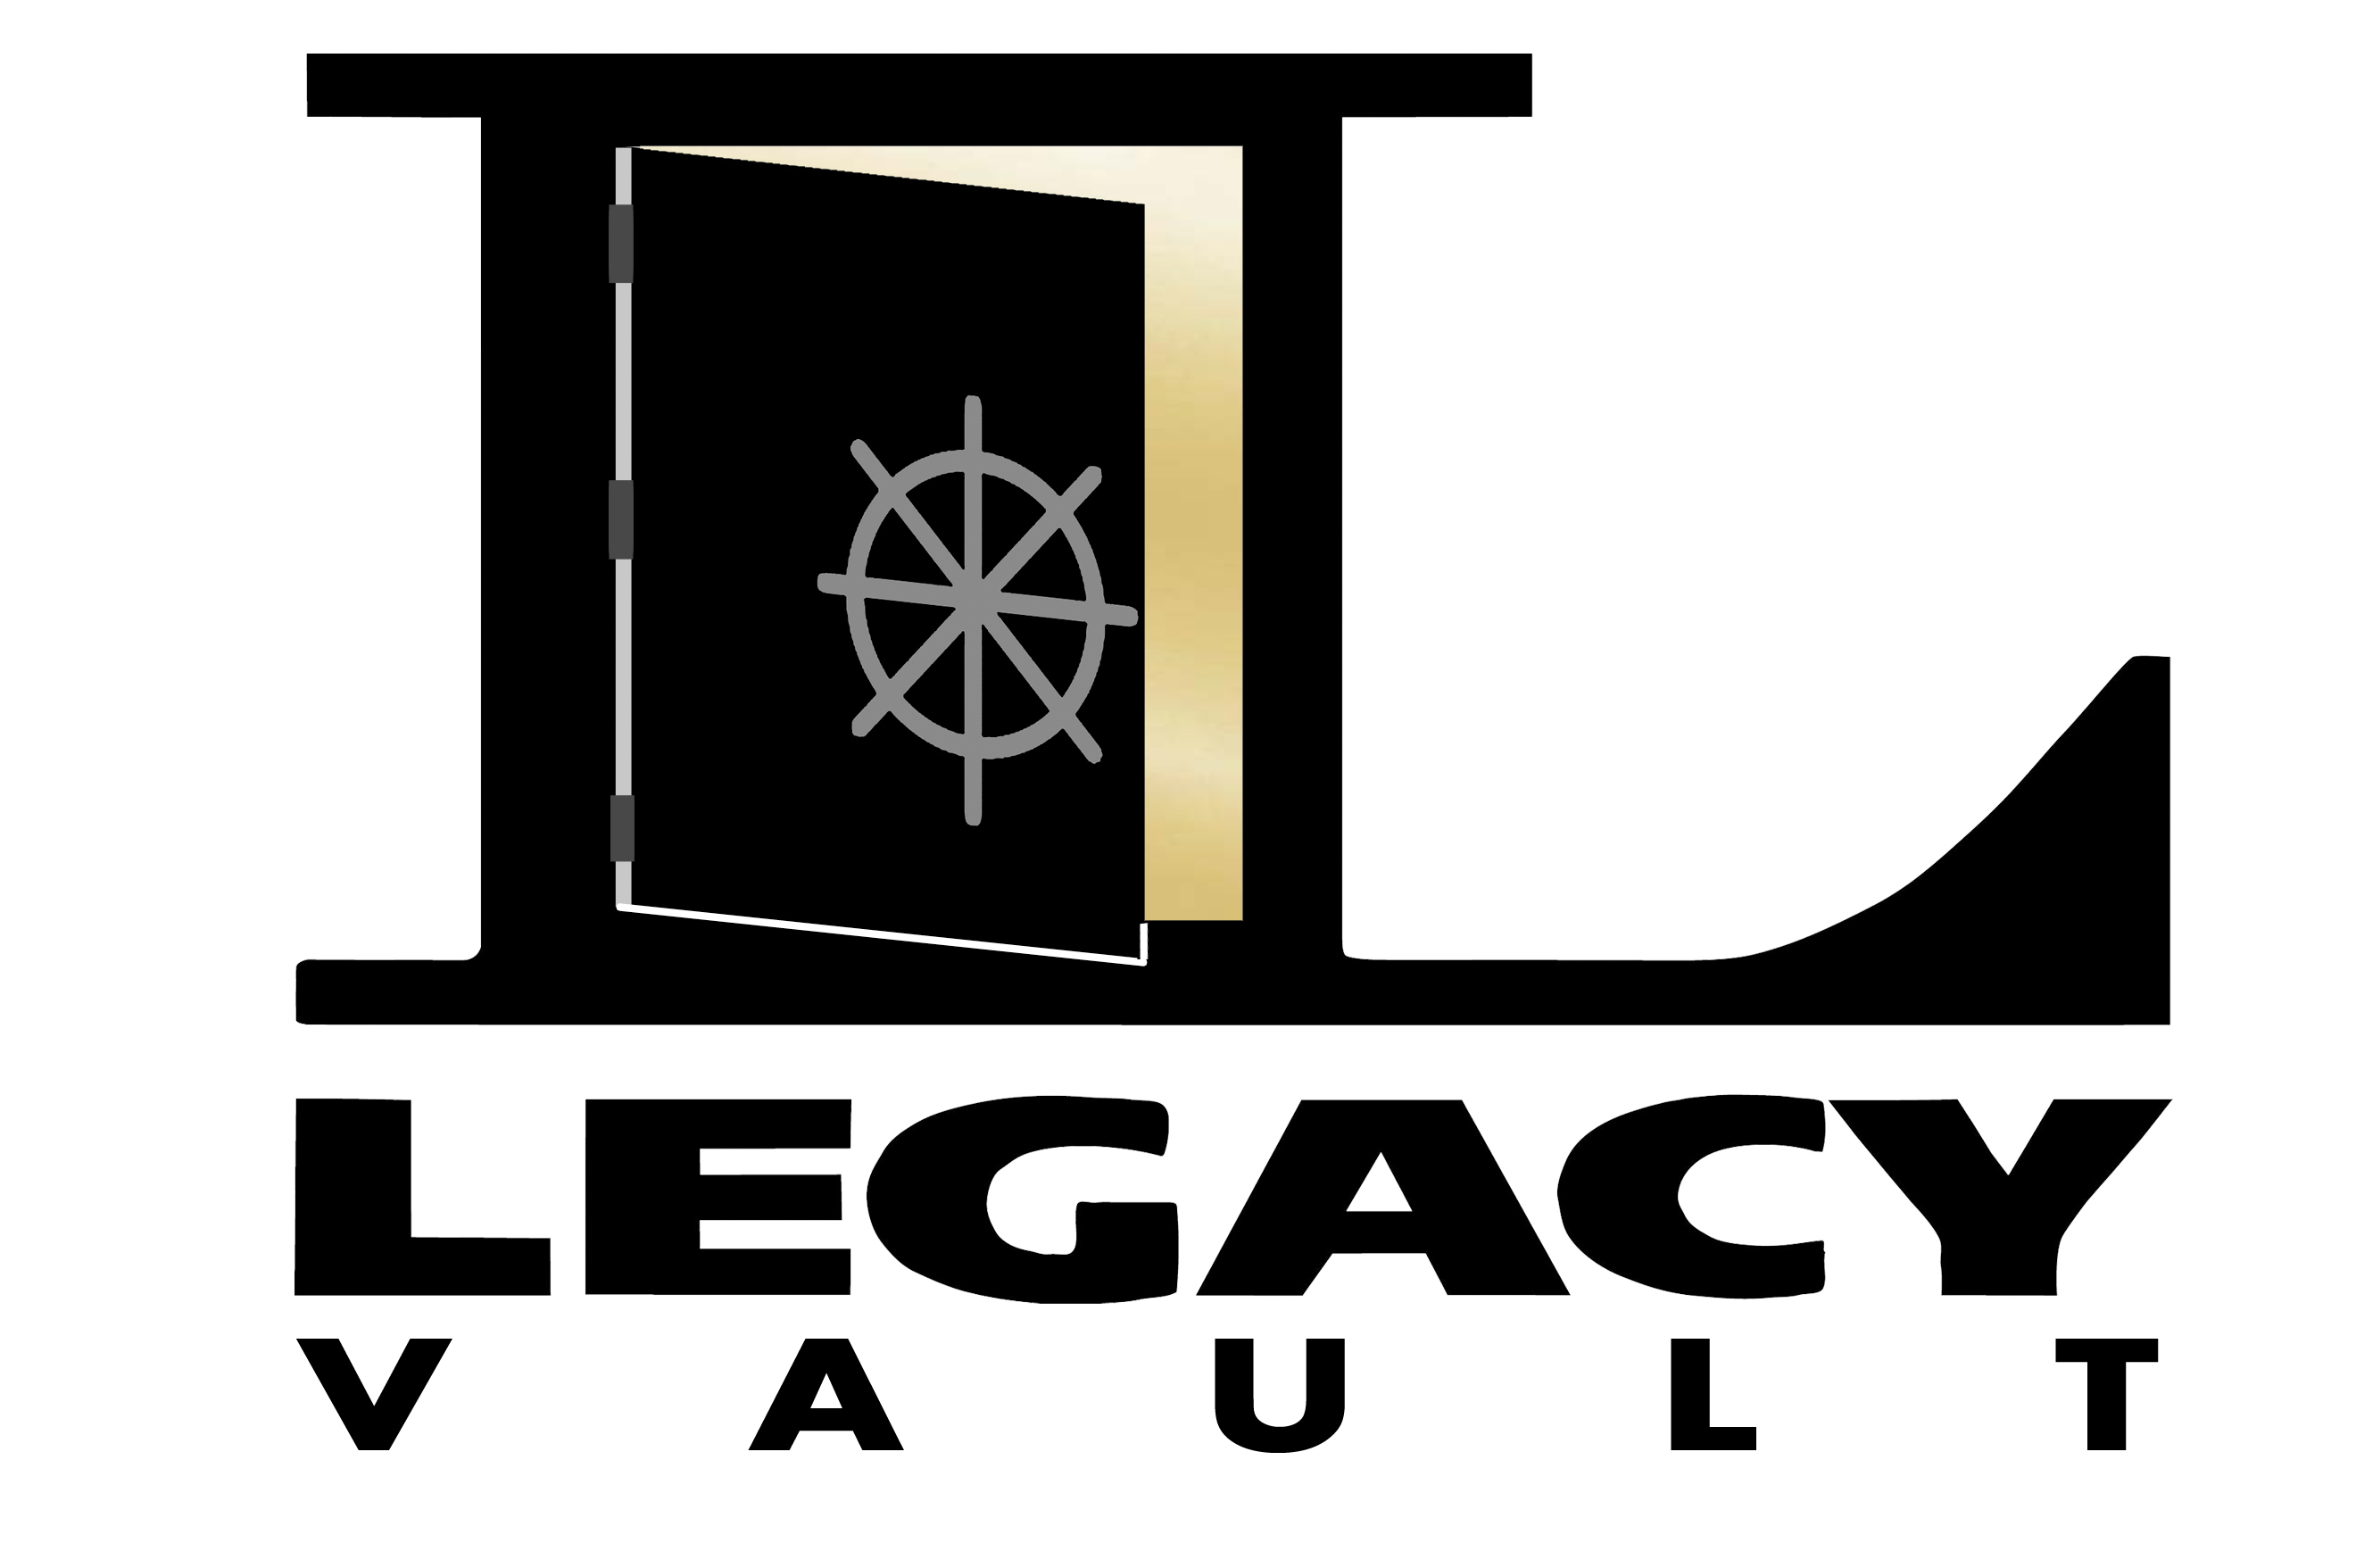 LEGACY RECORDINGS ANNOUNCES CATALOG ALBUM TITLES SELECTED BY ONLINE VOTERS FOR FIRST-TIME DIGITAL RELEASE